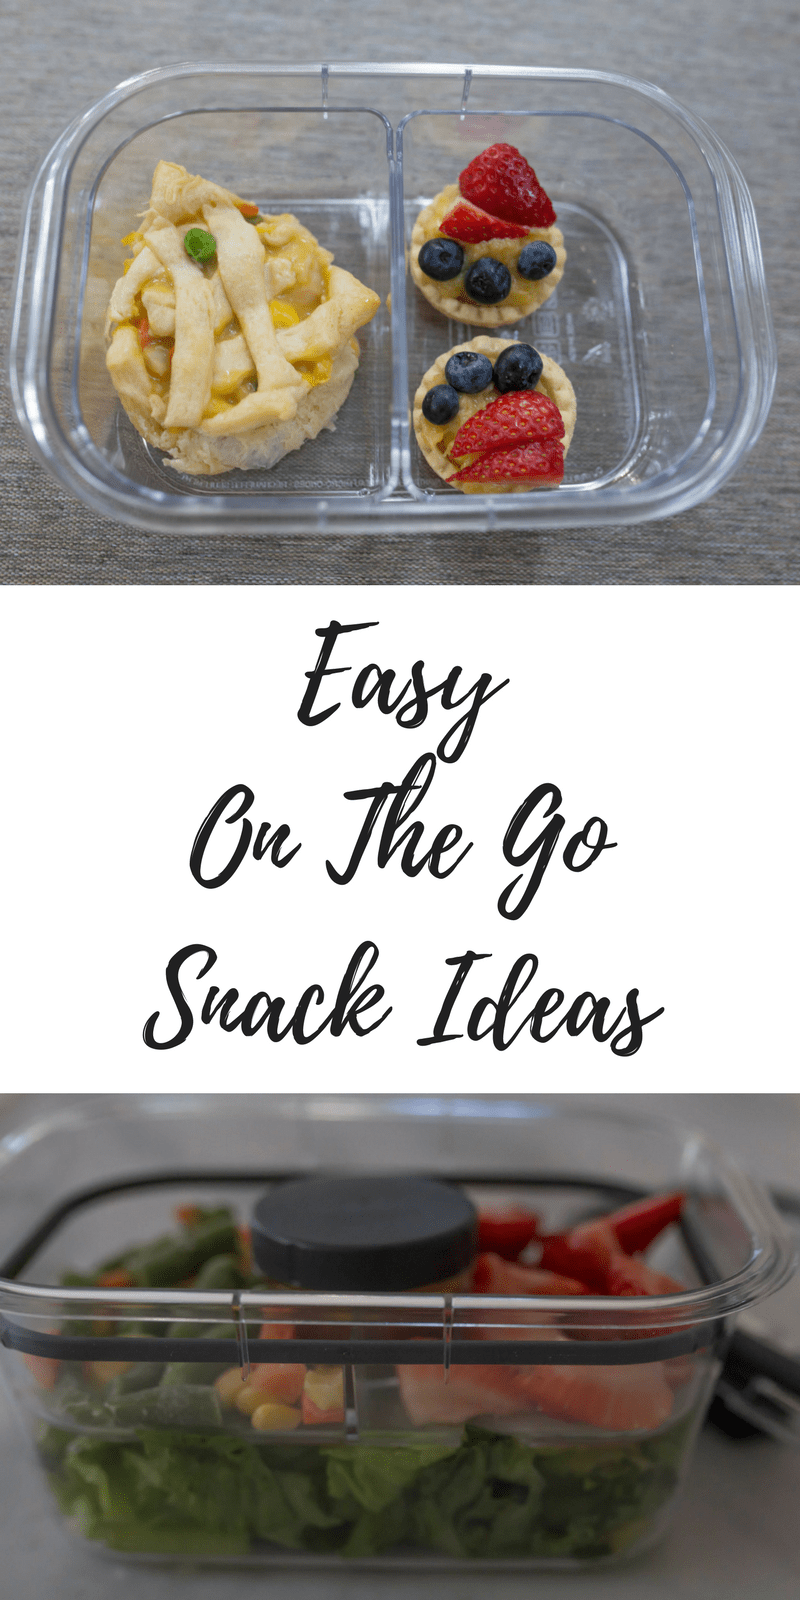 easy on the go snack ideas from lifestyle blogger casual claire